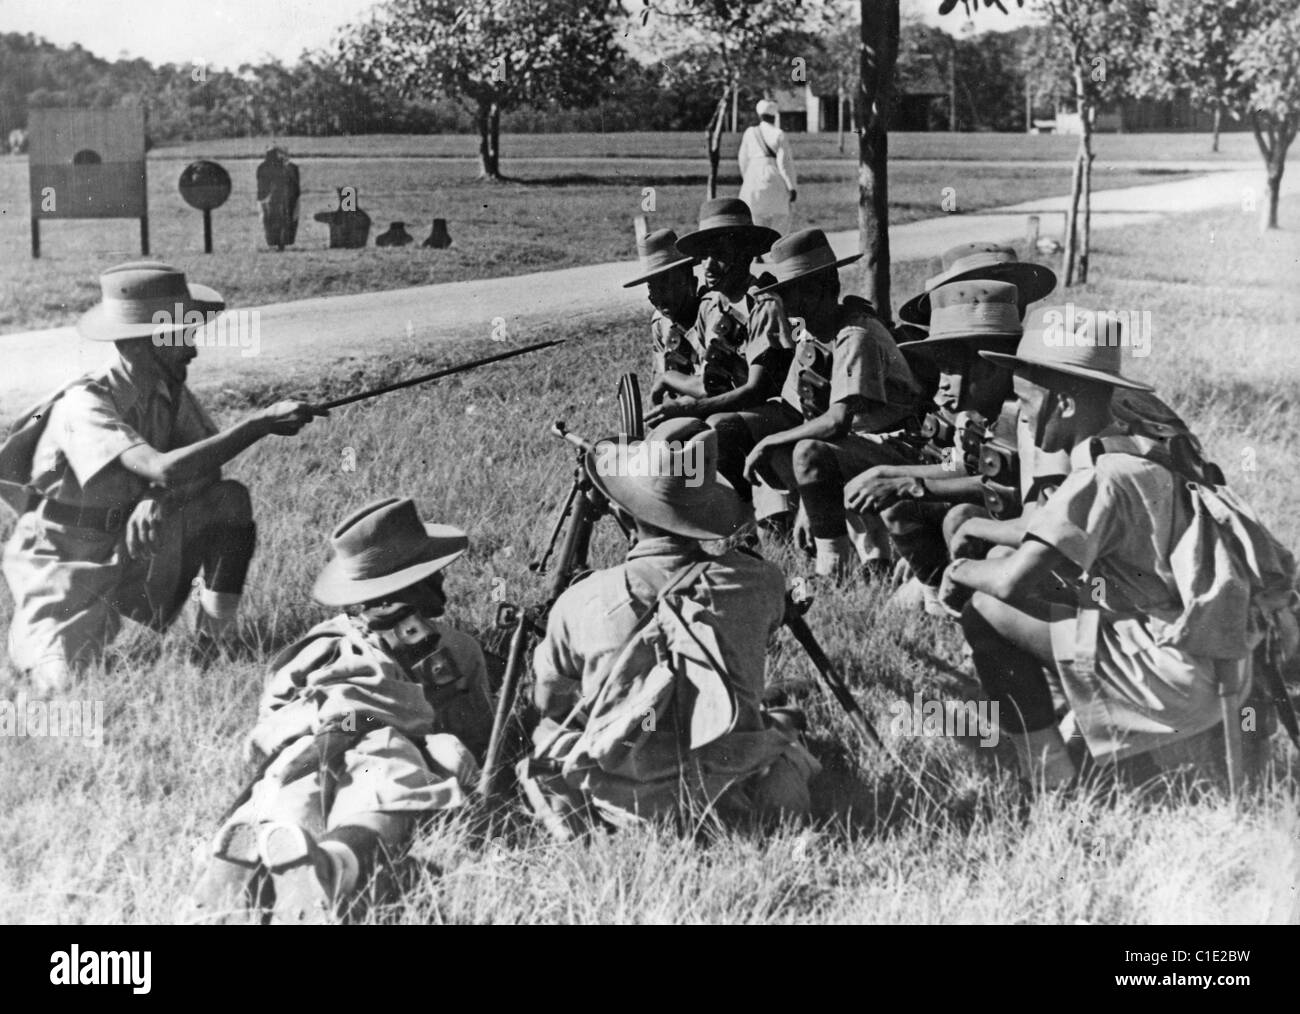 BURMA CAMPAIGN Burmese troops receiving training from a British officer about 1940 - Stock Image